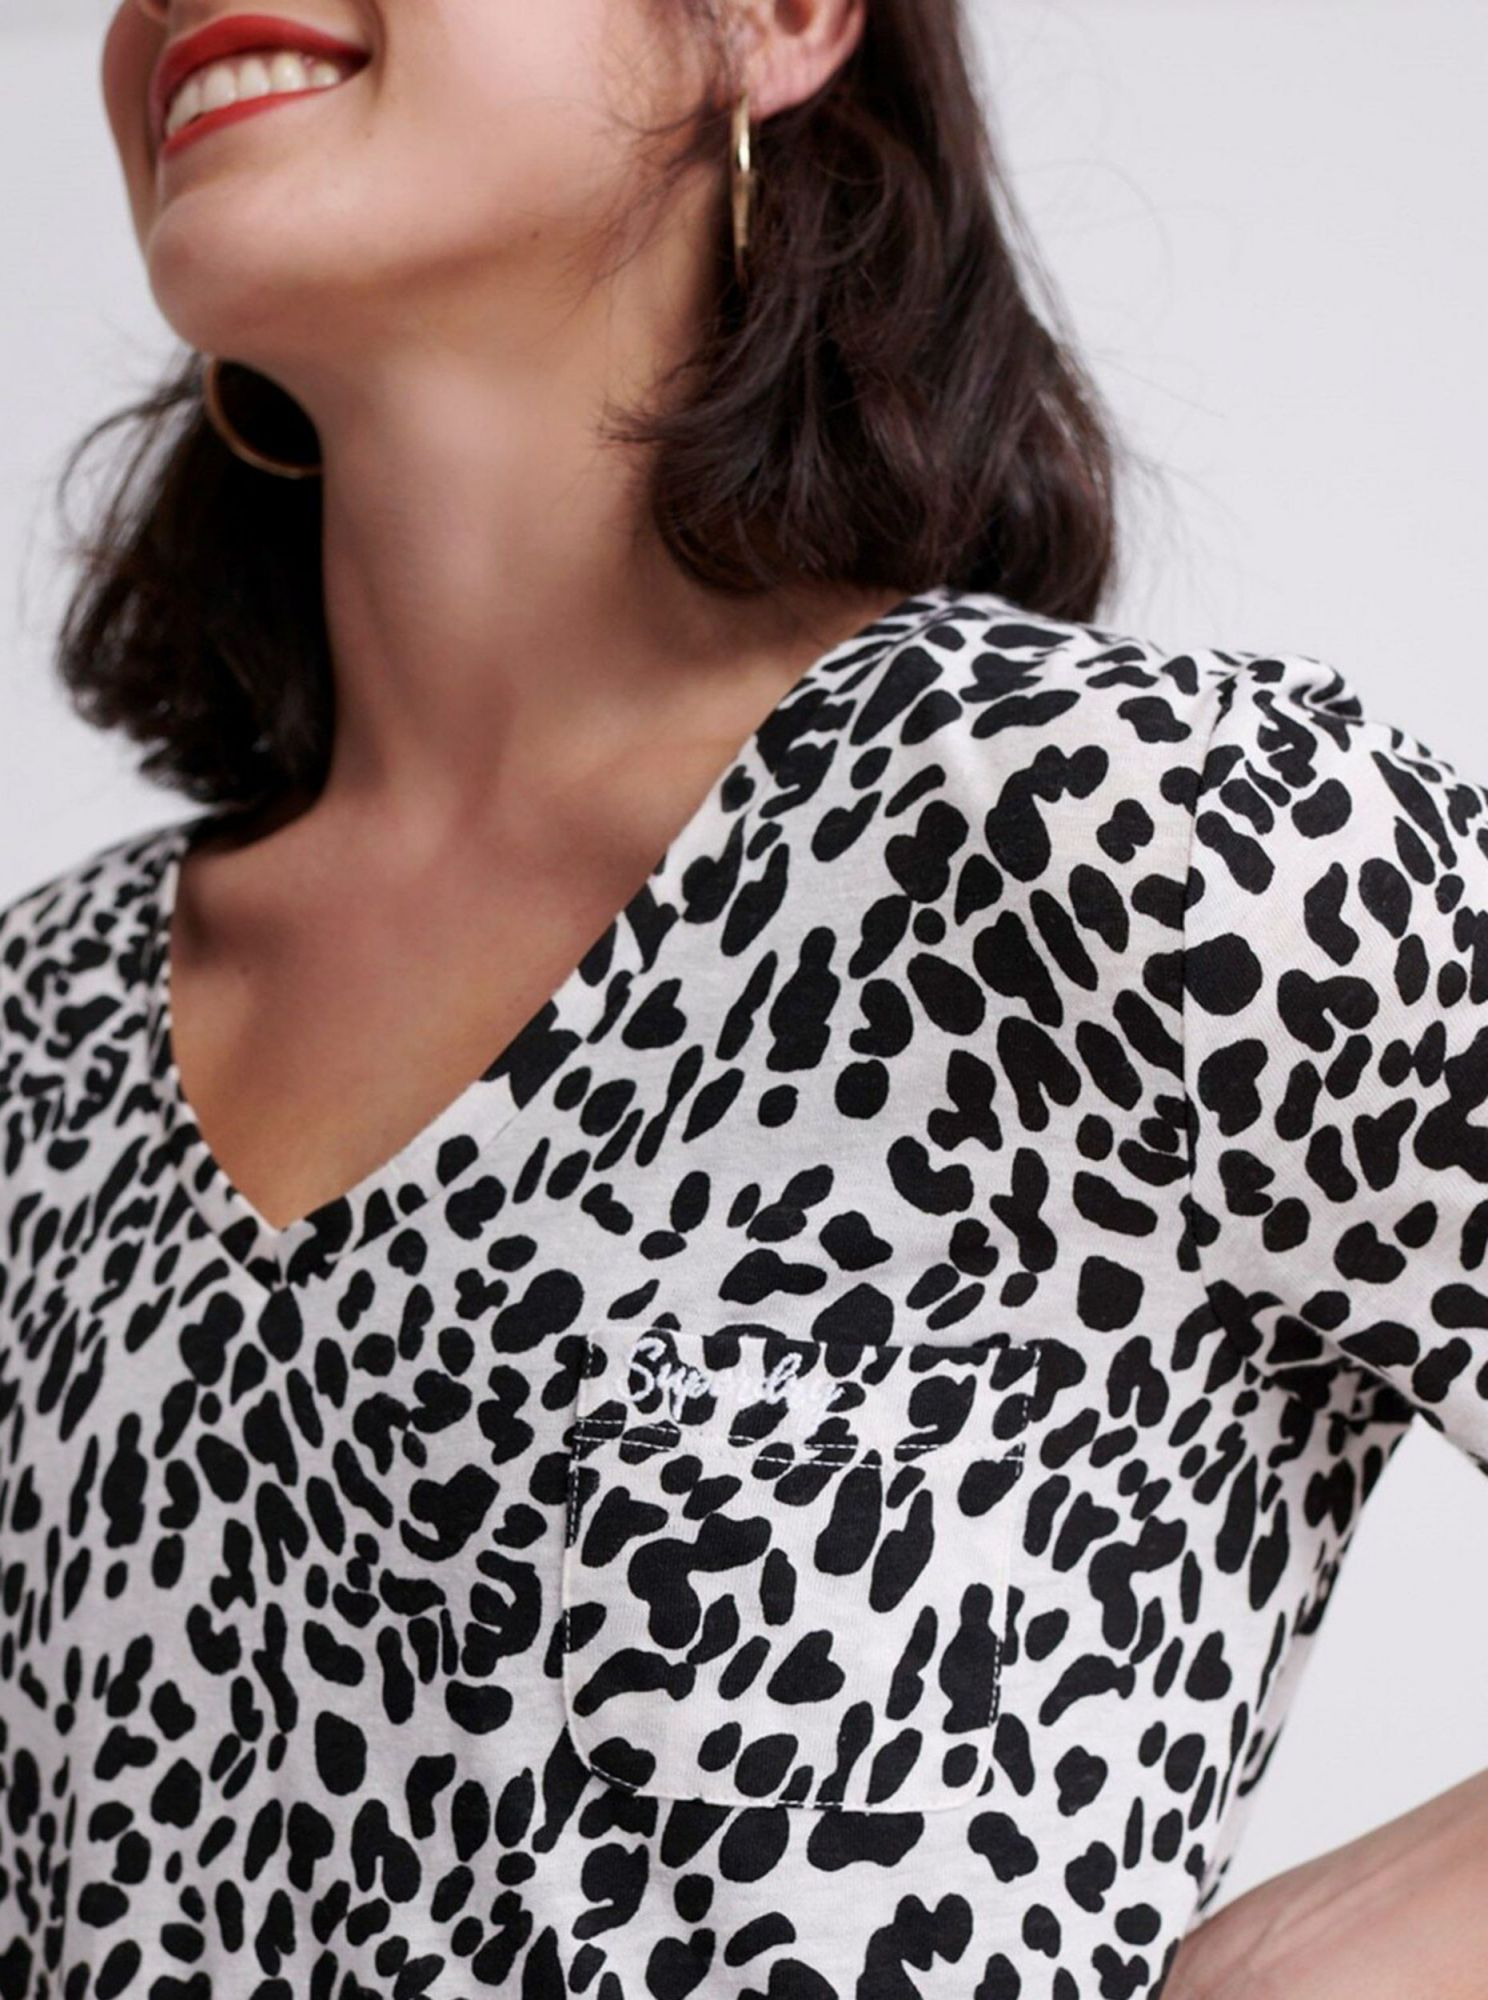 Black and white women's patterned Superdry T-shirt